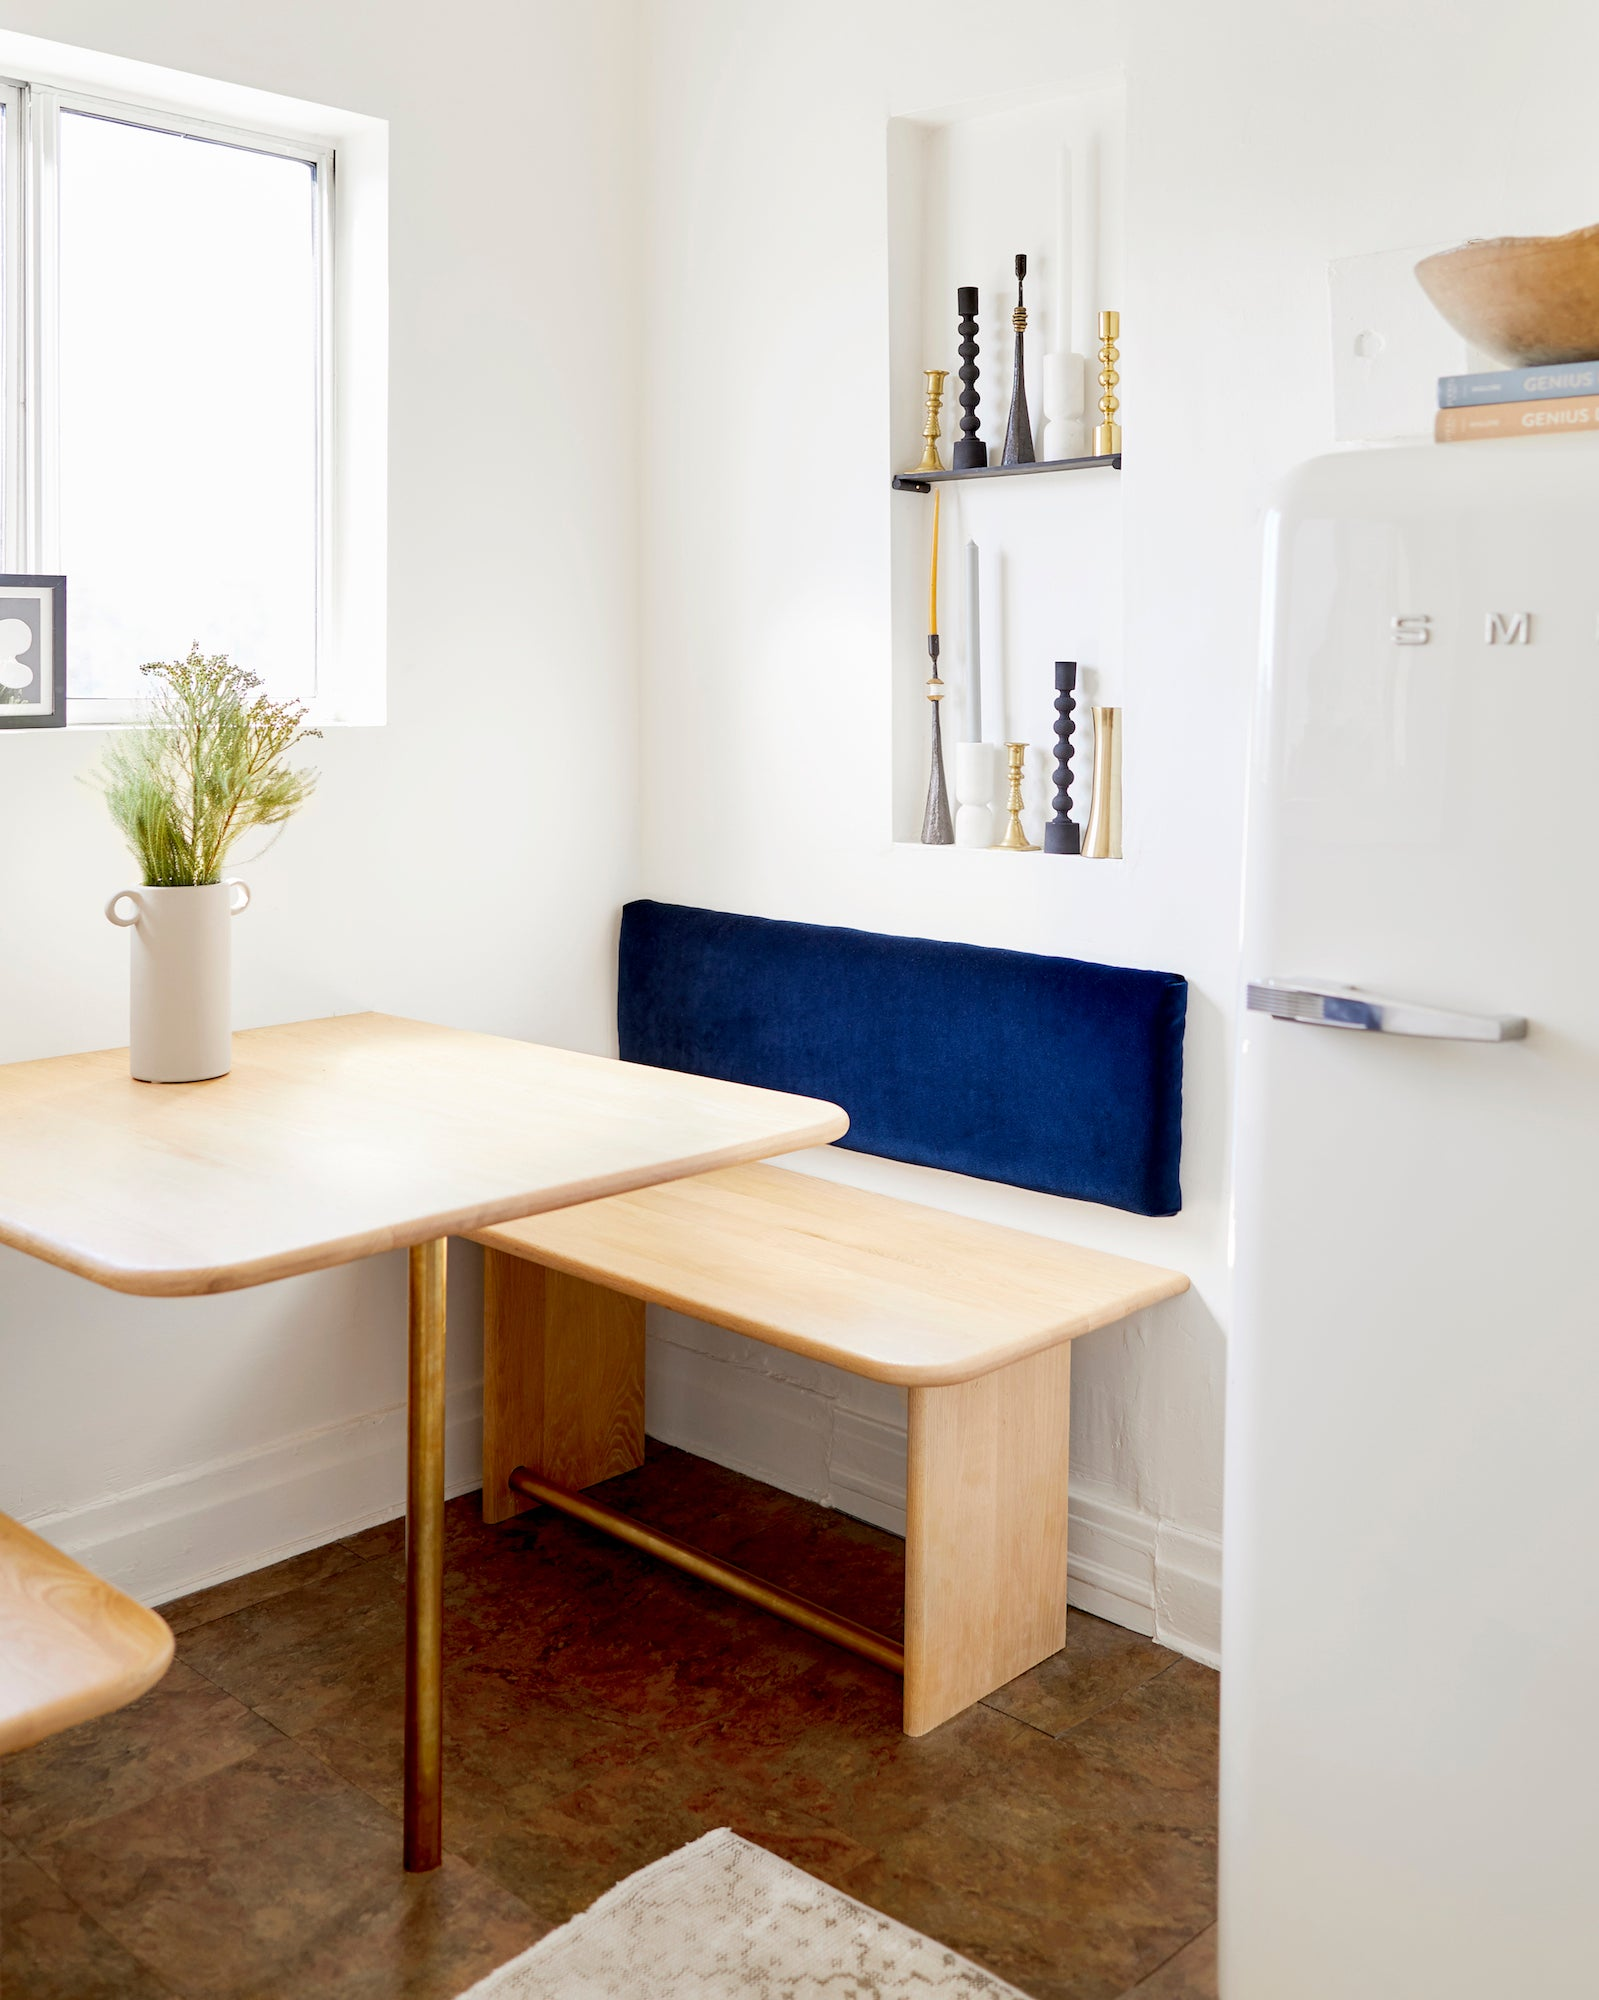 Small rental kitchen with wood countertops